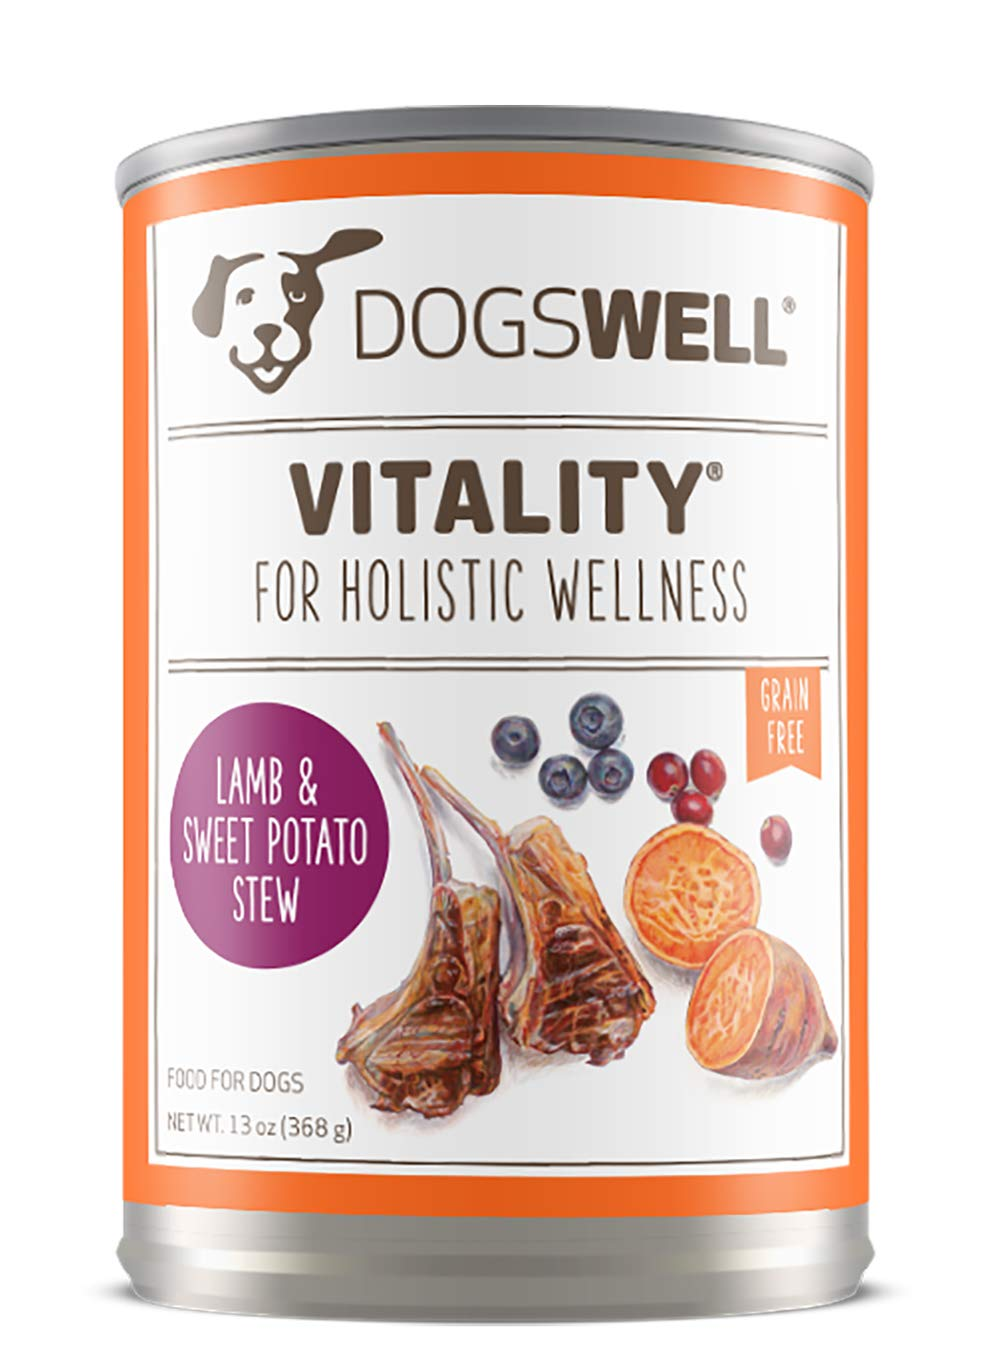 Dogswell Vitality for Dogs Lamb & Sweet Potato Stew Recipe 13-Ounce Cans (Pack of 12)